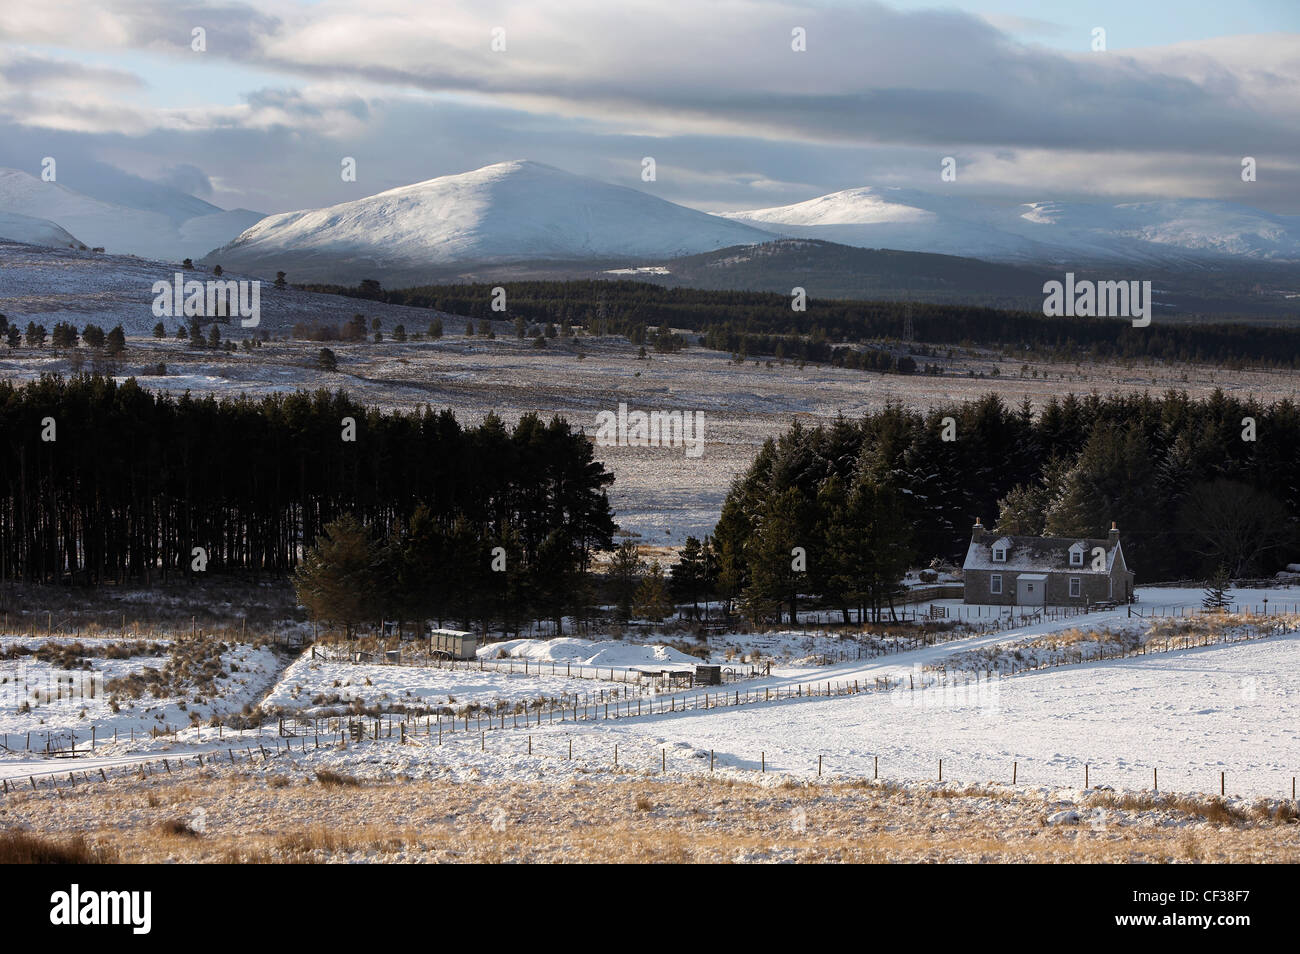 View over the Braes of Abernethy to the Cairngorm mountain range in Scotland. - Stock Image